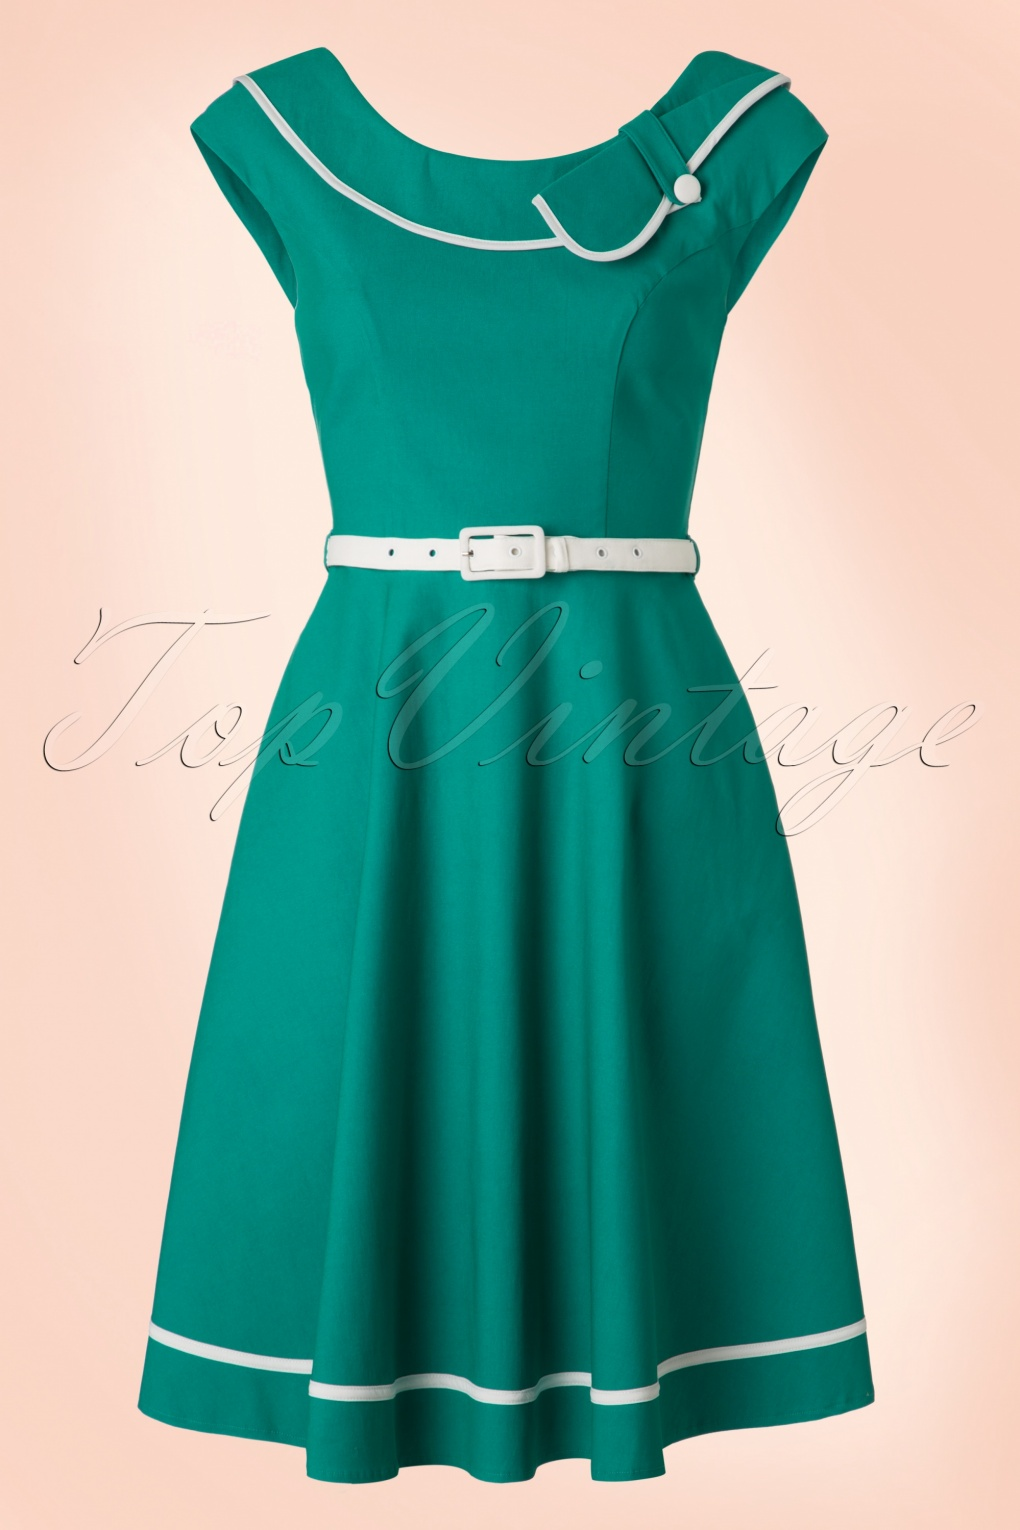 Nora Swing Dress in Turquoise